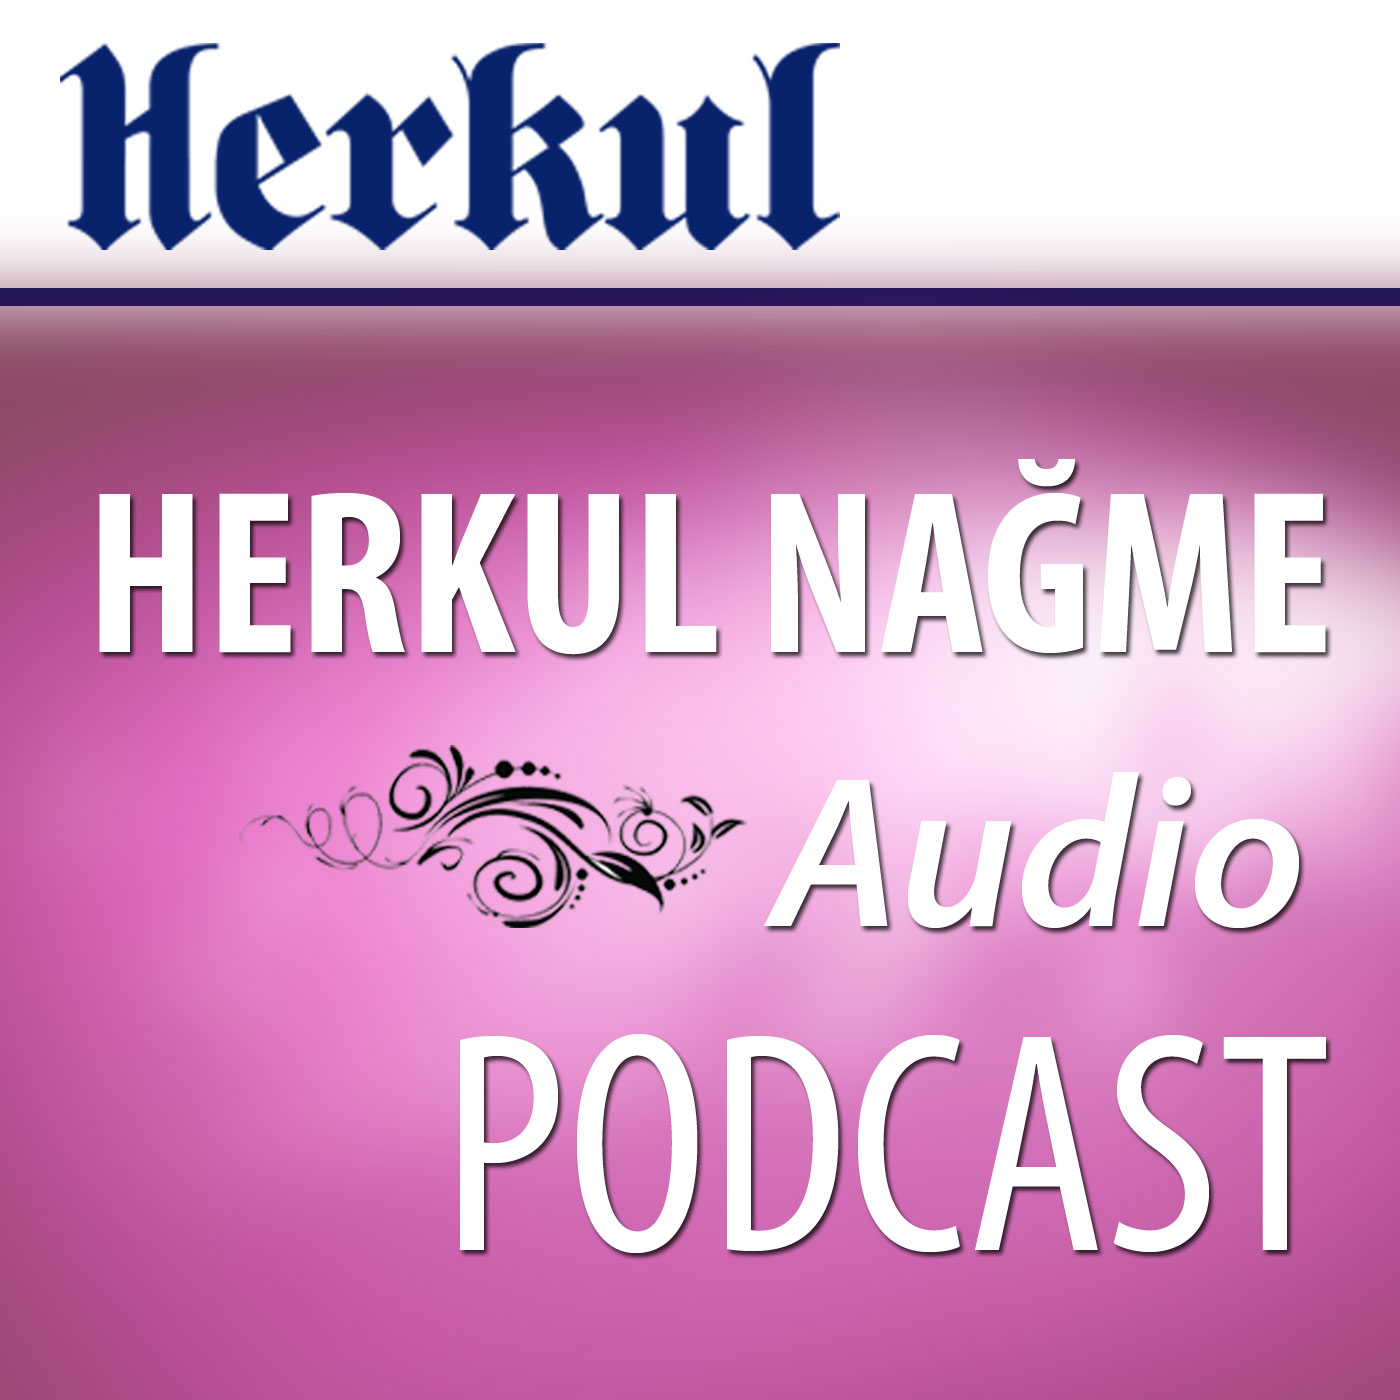 Herkul.org :. Herkul Nagme Audio Podcast